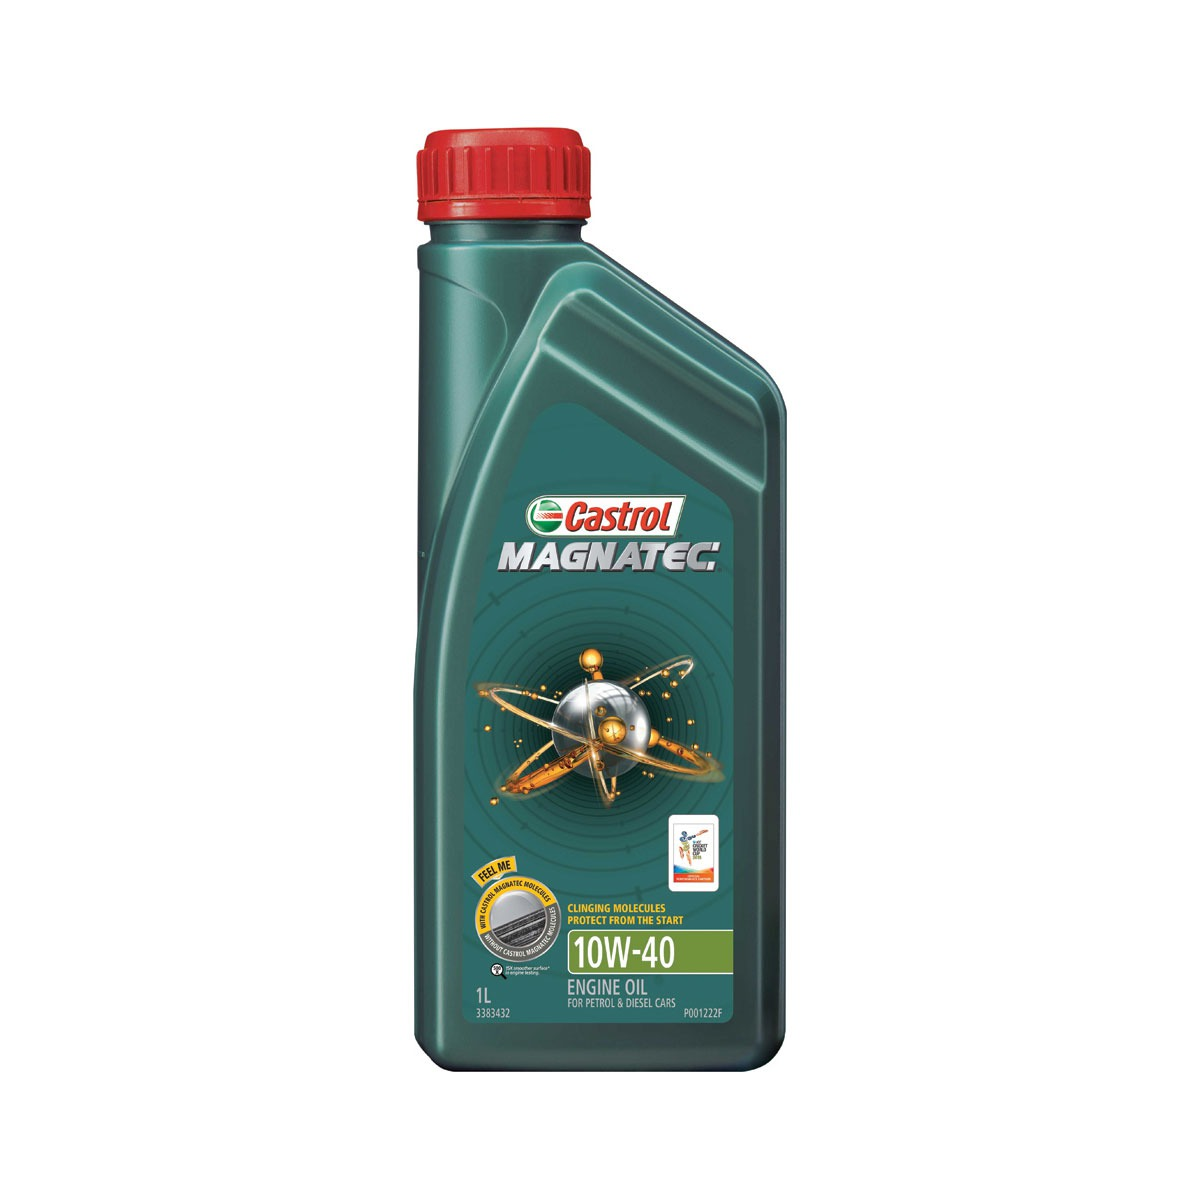 Details about Castrol MAGNATEC 10W40 Engine Oil 1L 6 Box